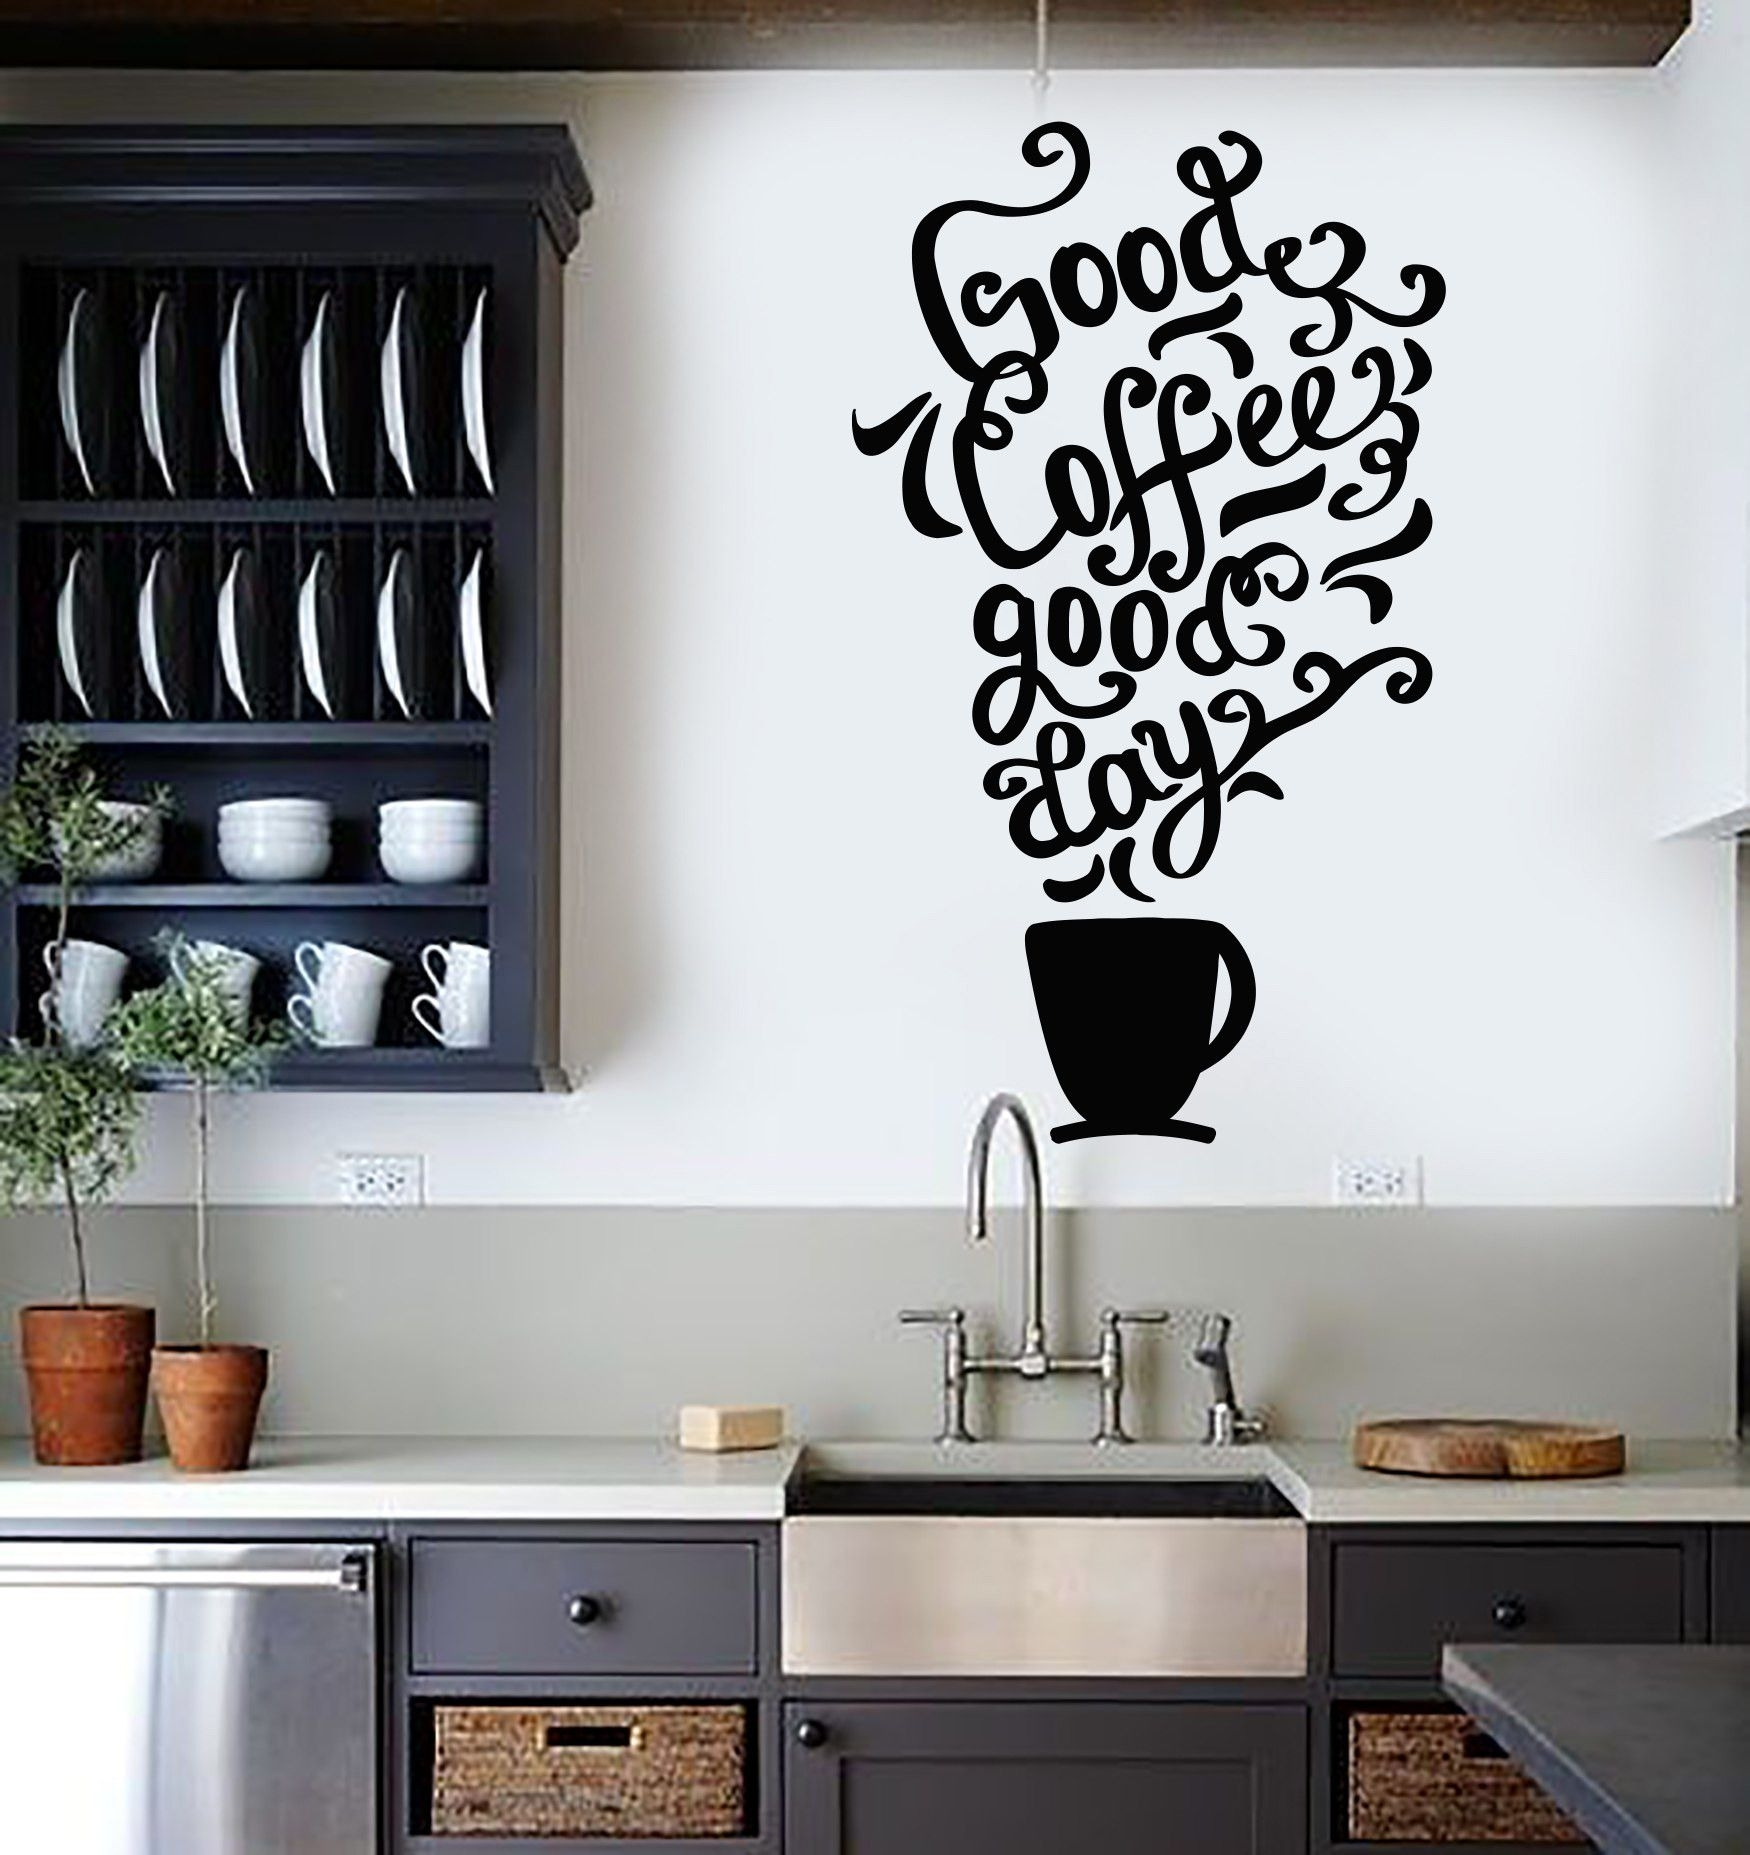 Vinyl Wall Decal Quote Coffee Kitchen Shop Restaurant Cafe Art Regarding Most Popular Vinyl Wall Accents (View 11 of 15)